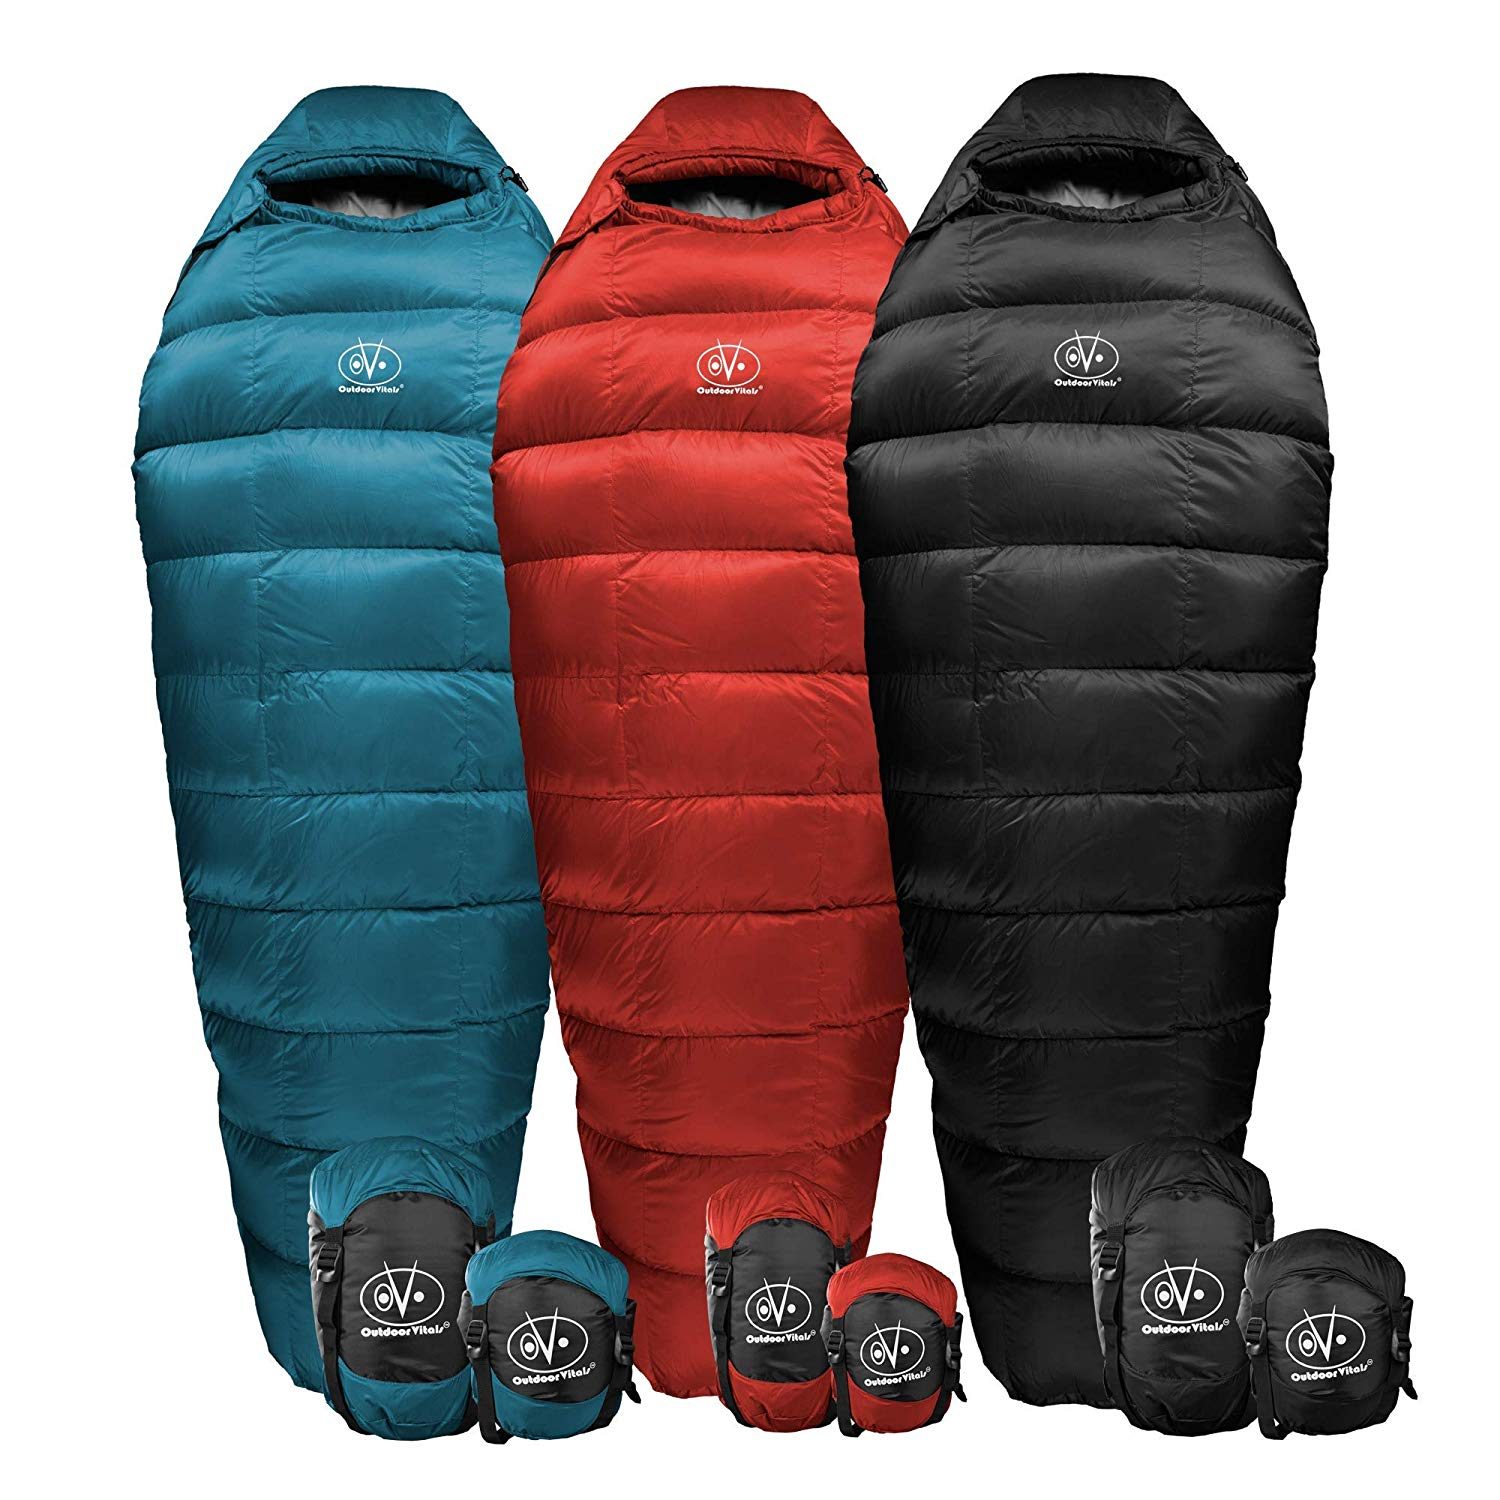 An image of Outdoor Vitals Summit Men's Down Sleeping Bag